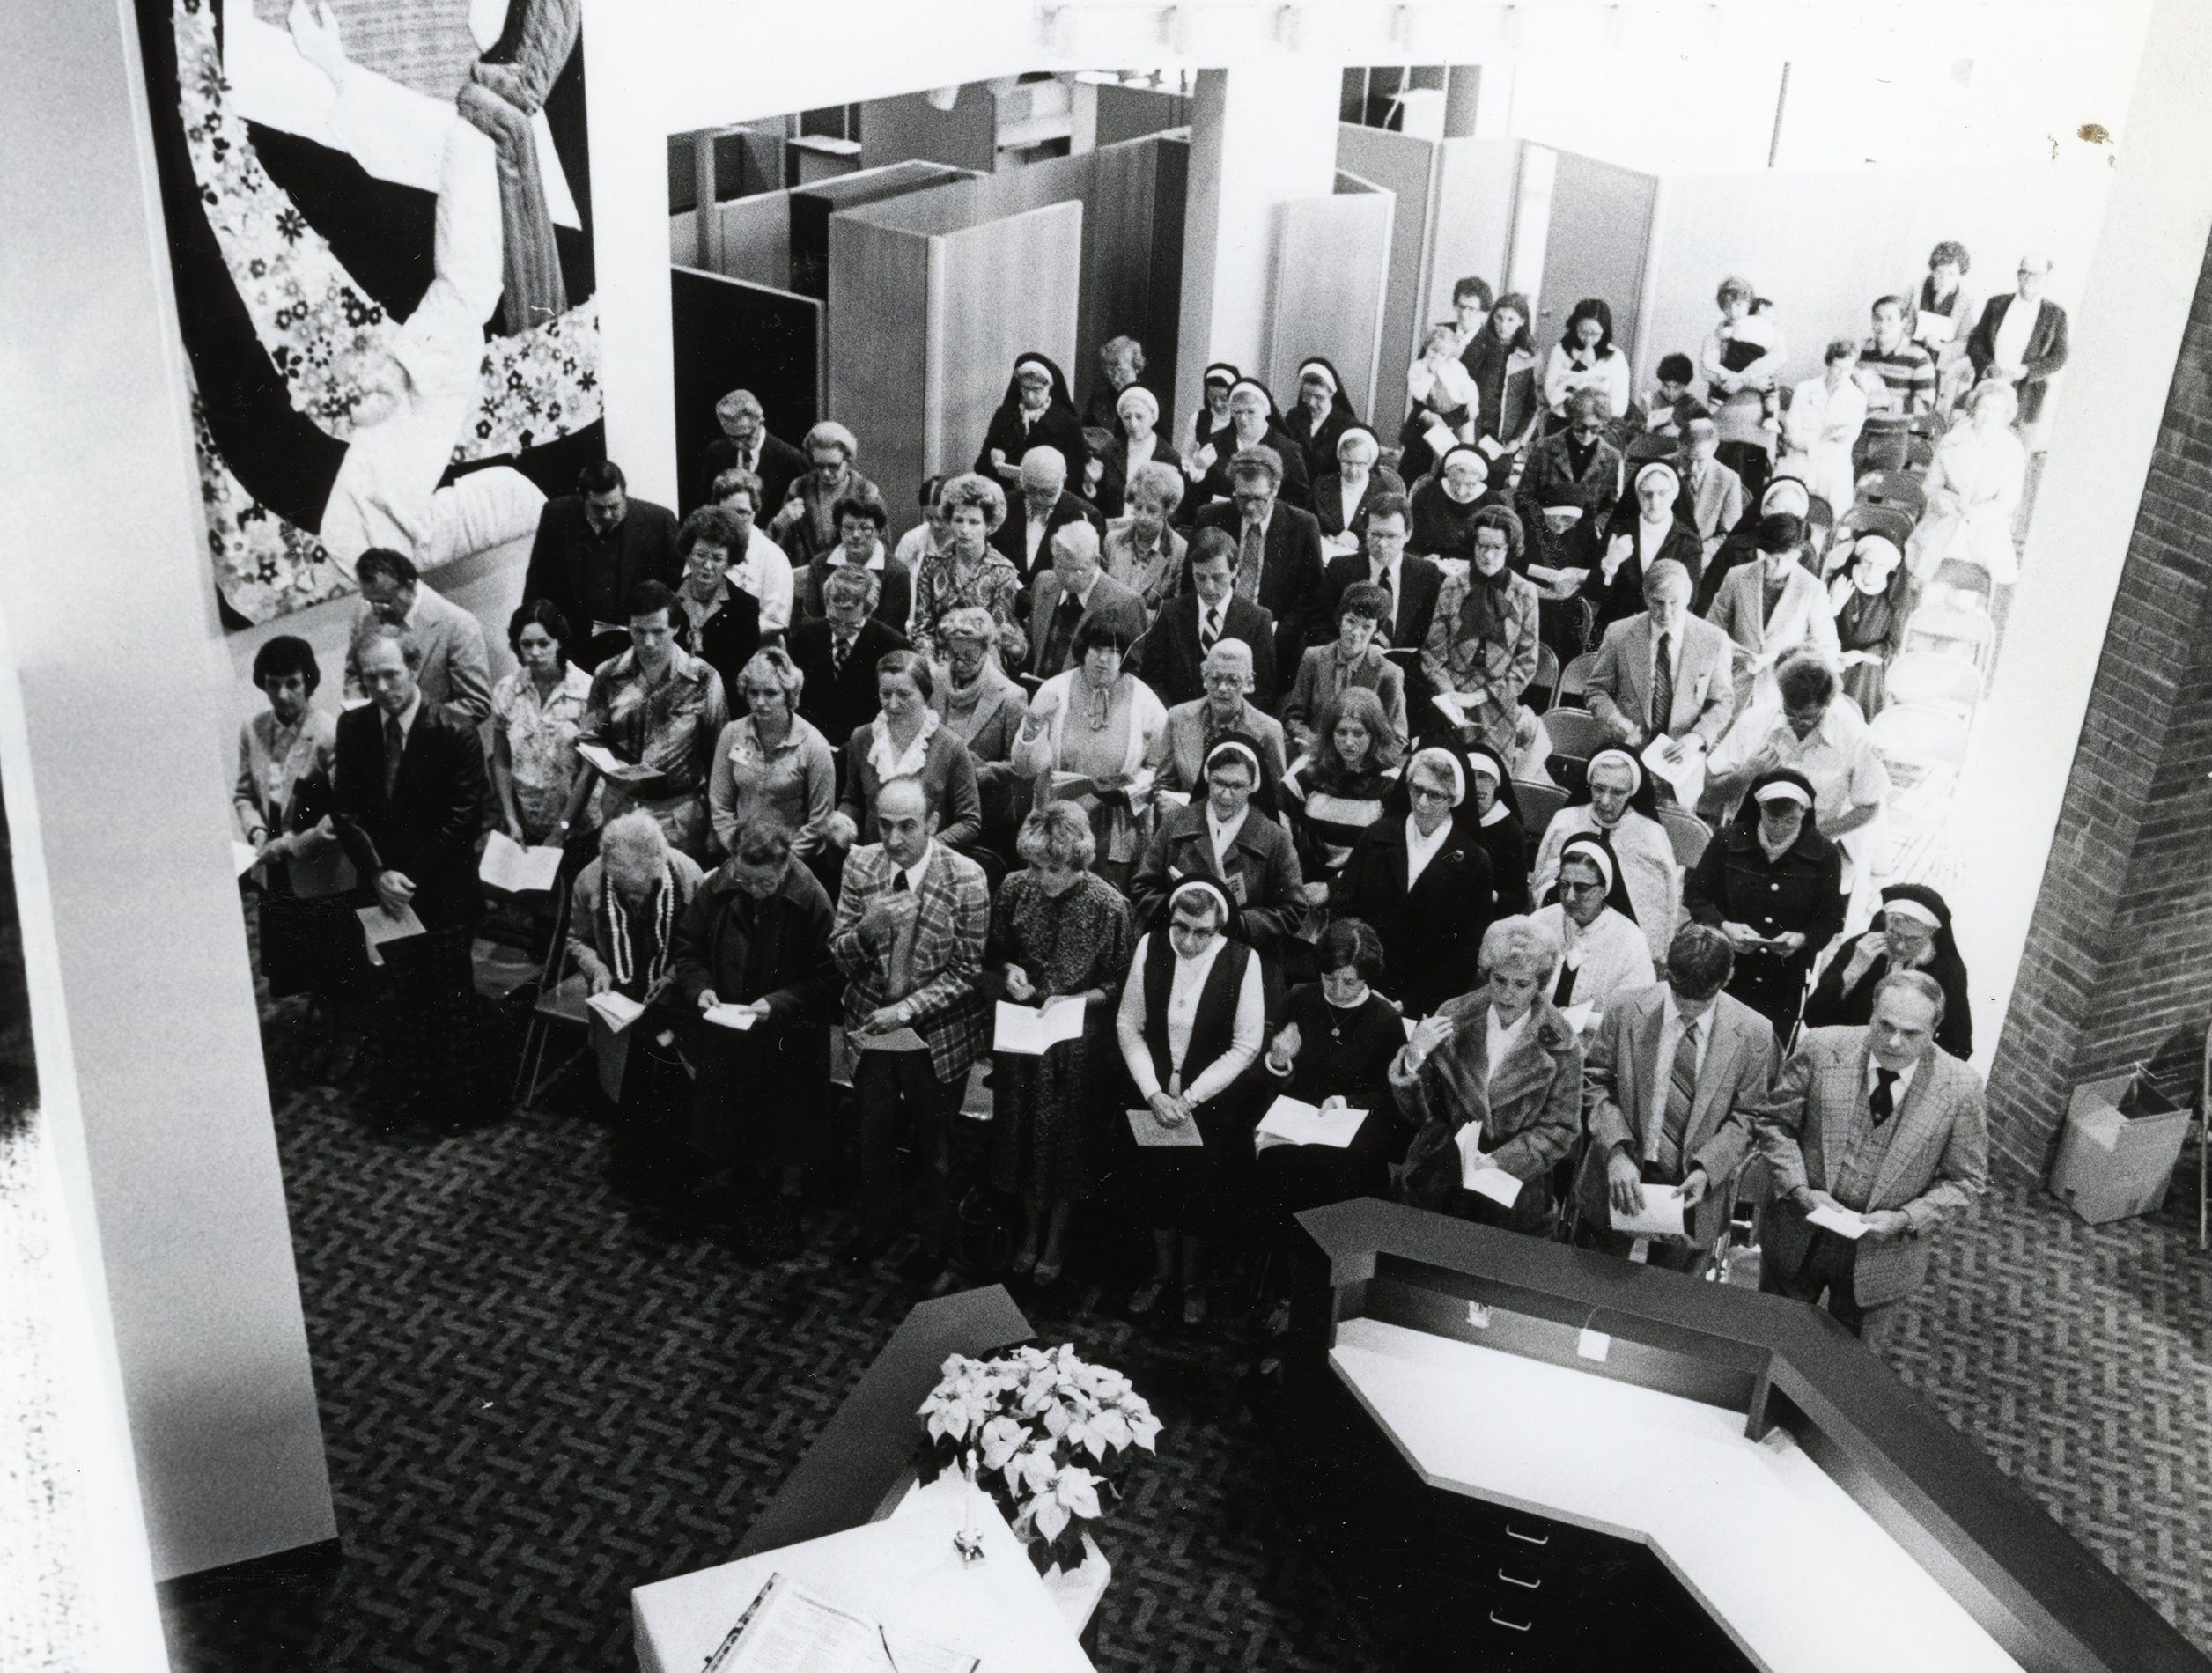 Bishop Niedergeses celebrates mass in the lobby of the new wing of St. Mary's Hospital before blessing the central wing in December 1979.